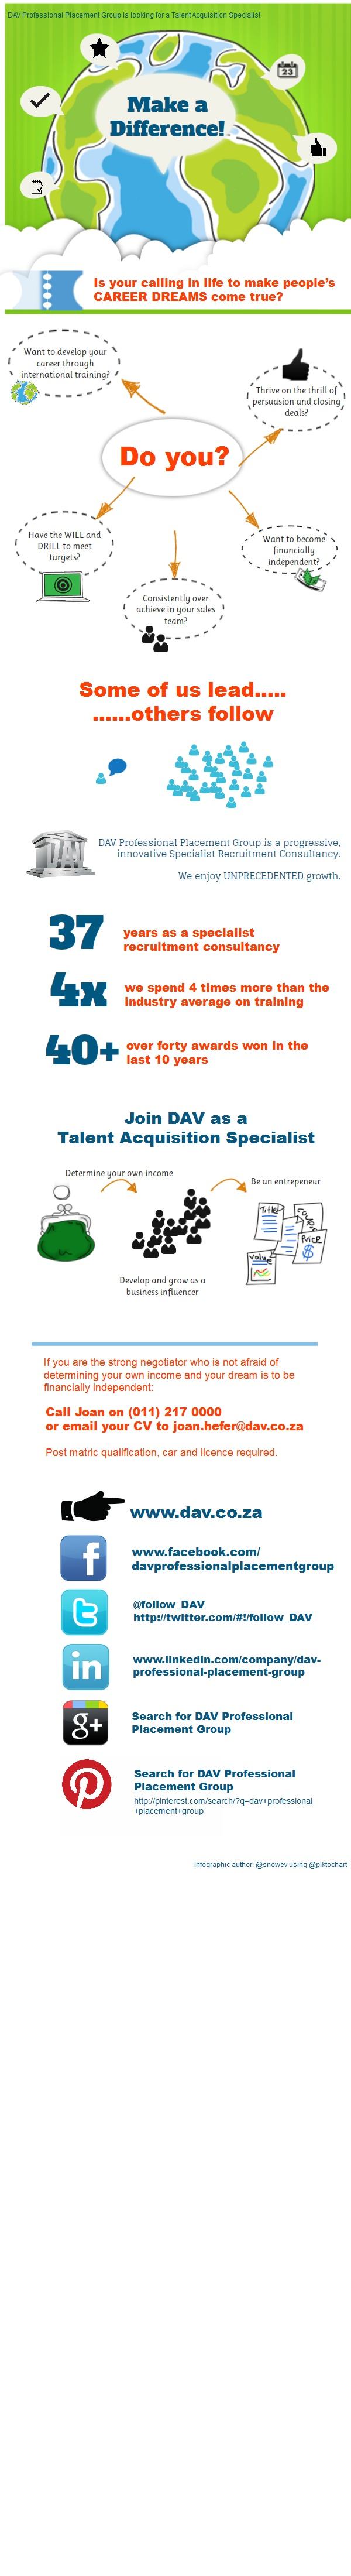 DAV Professional Placement Group is looking for a Talent Acquisition Specialist / Recruitment Consultant www.dav.co.za